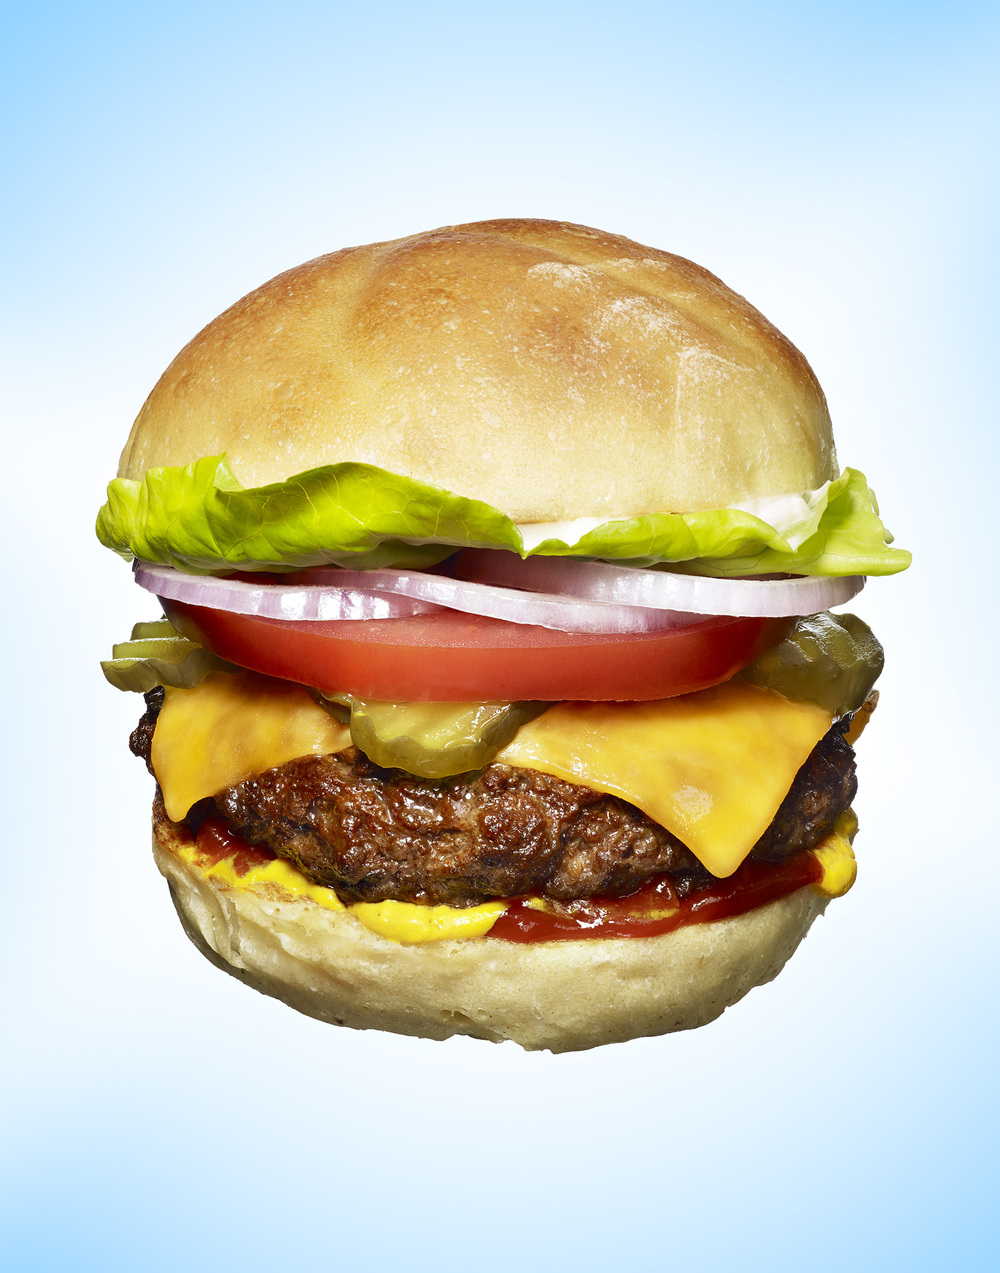 Cheeseburger with Lettuce, Tomato, and Onion